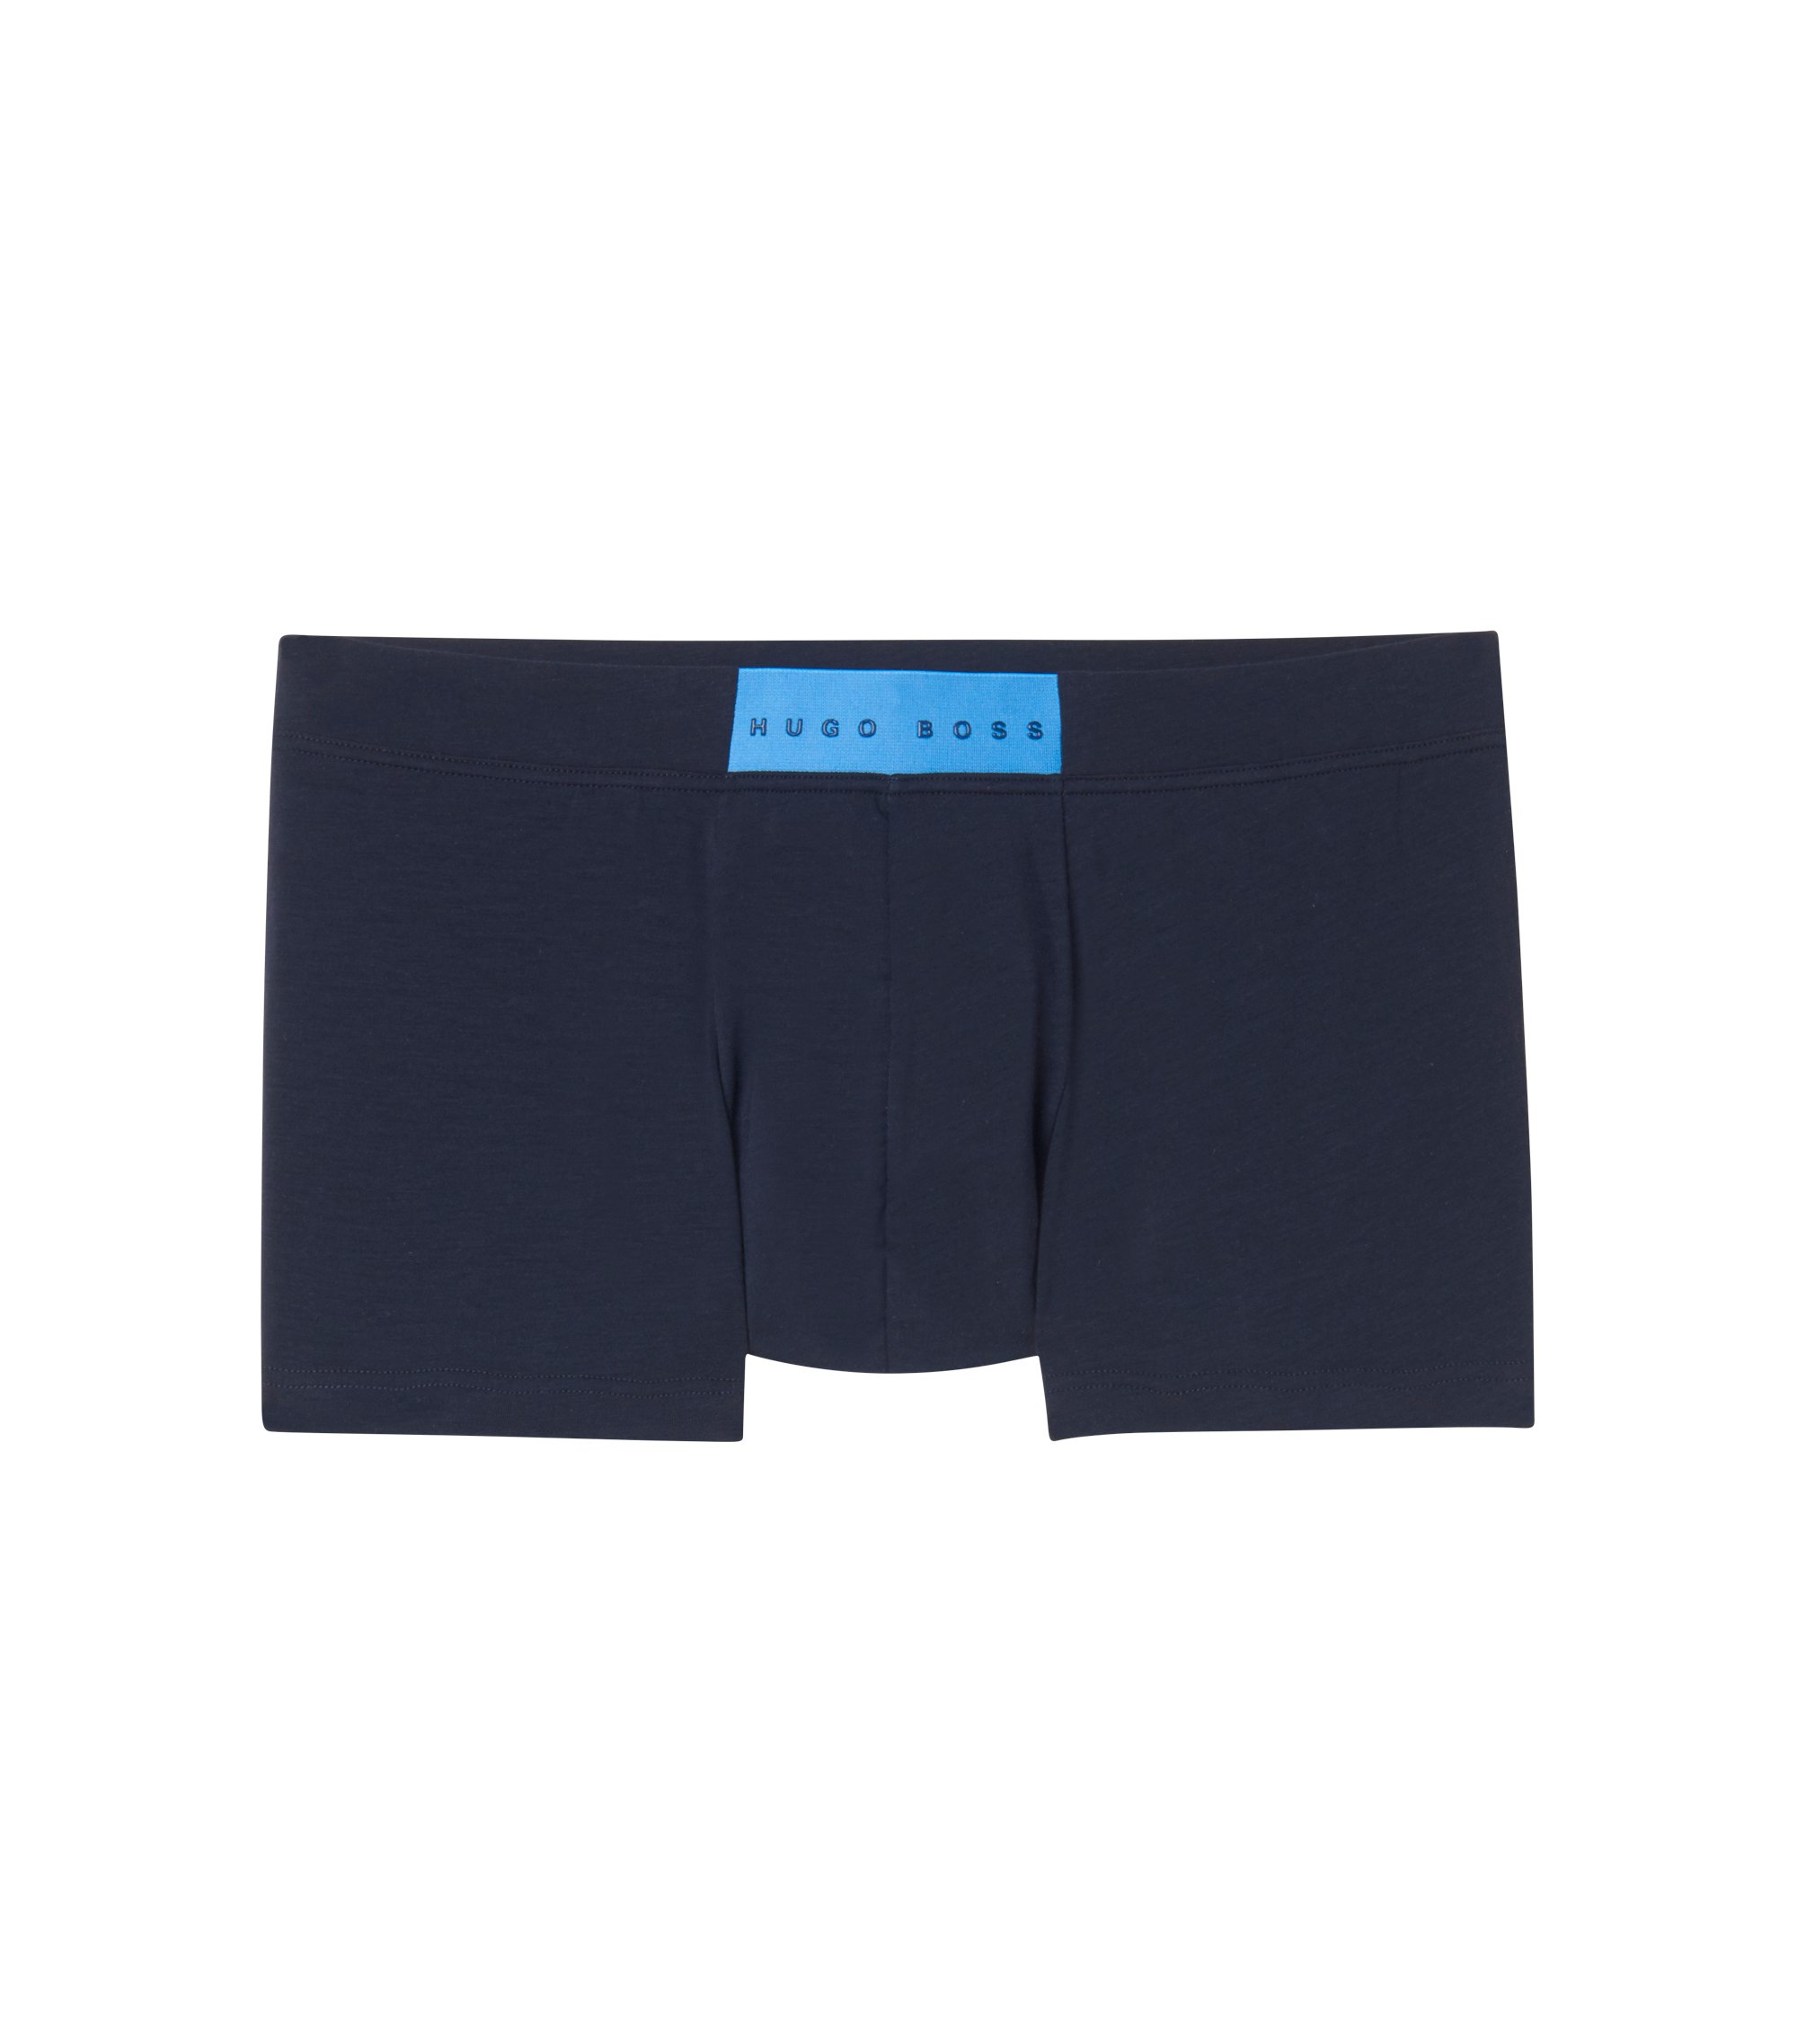 Stretch Cotton Trunk | Trunk Comfort, Dark Blue